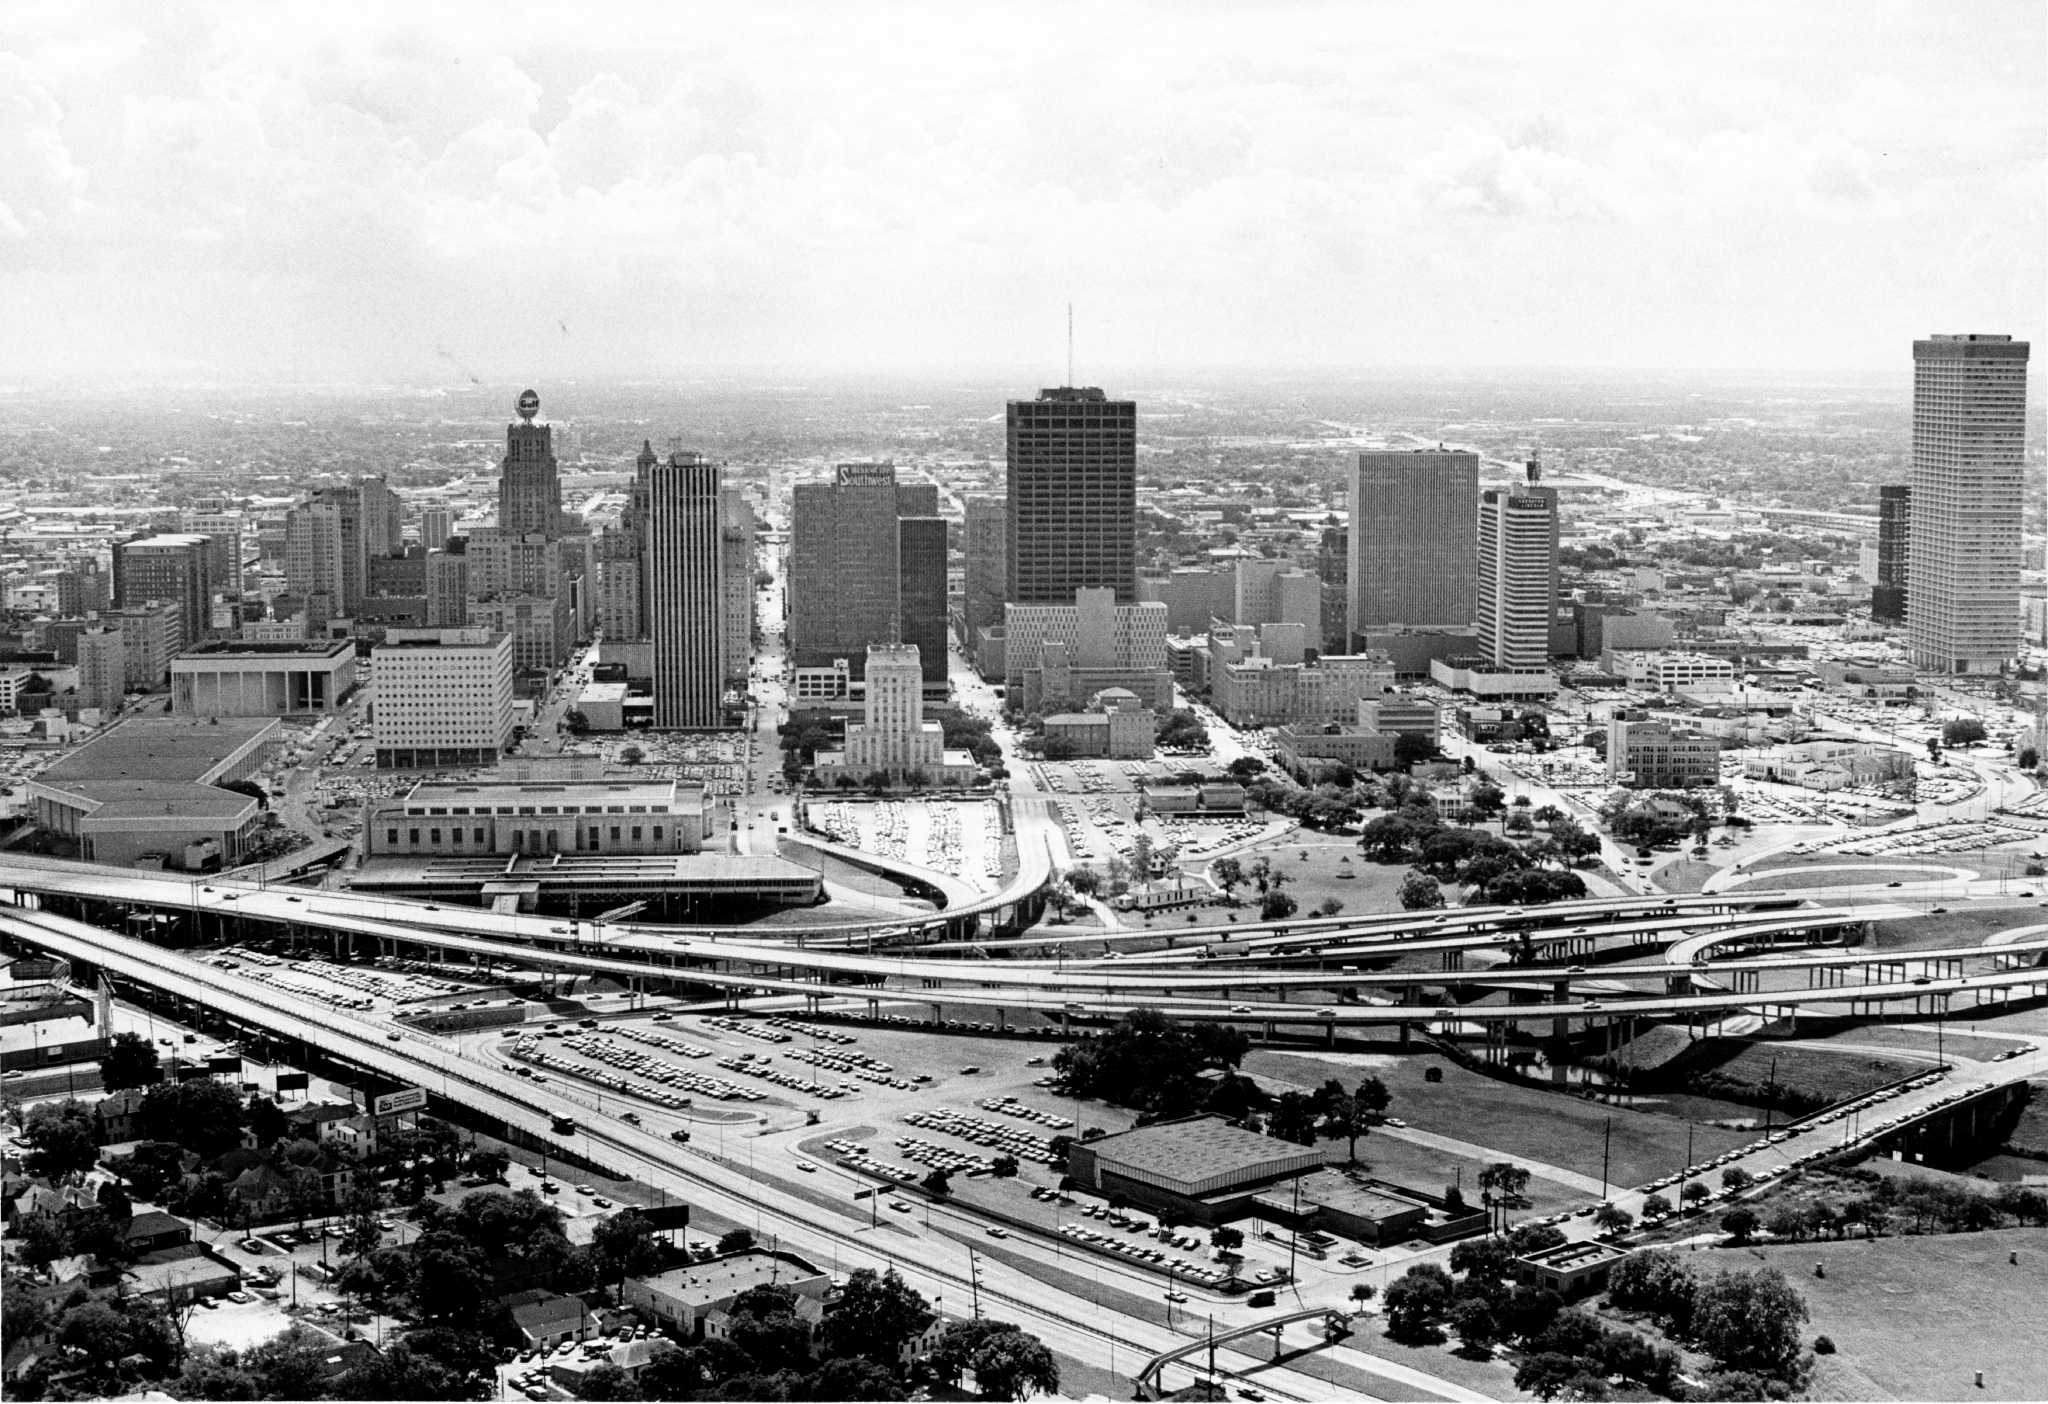 the past and future of i-45